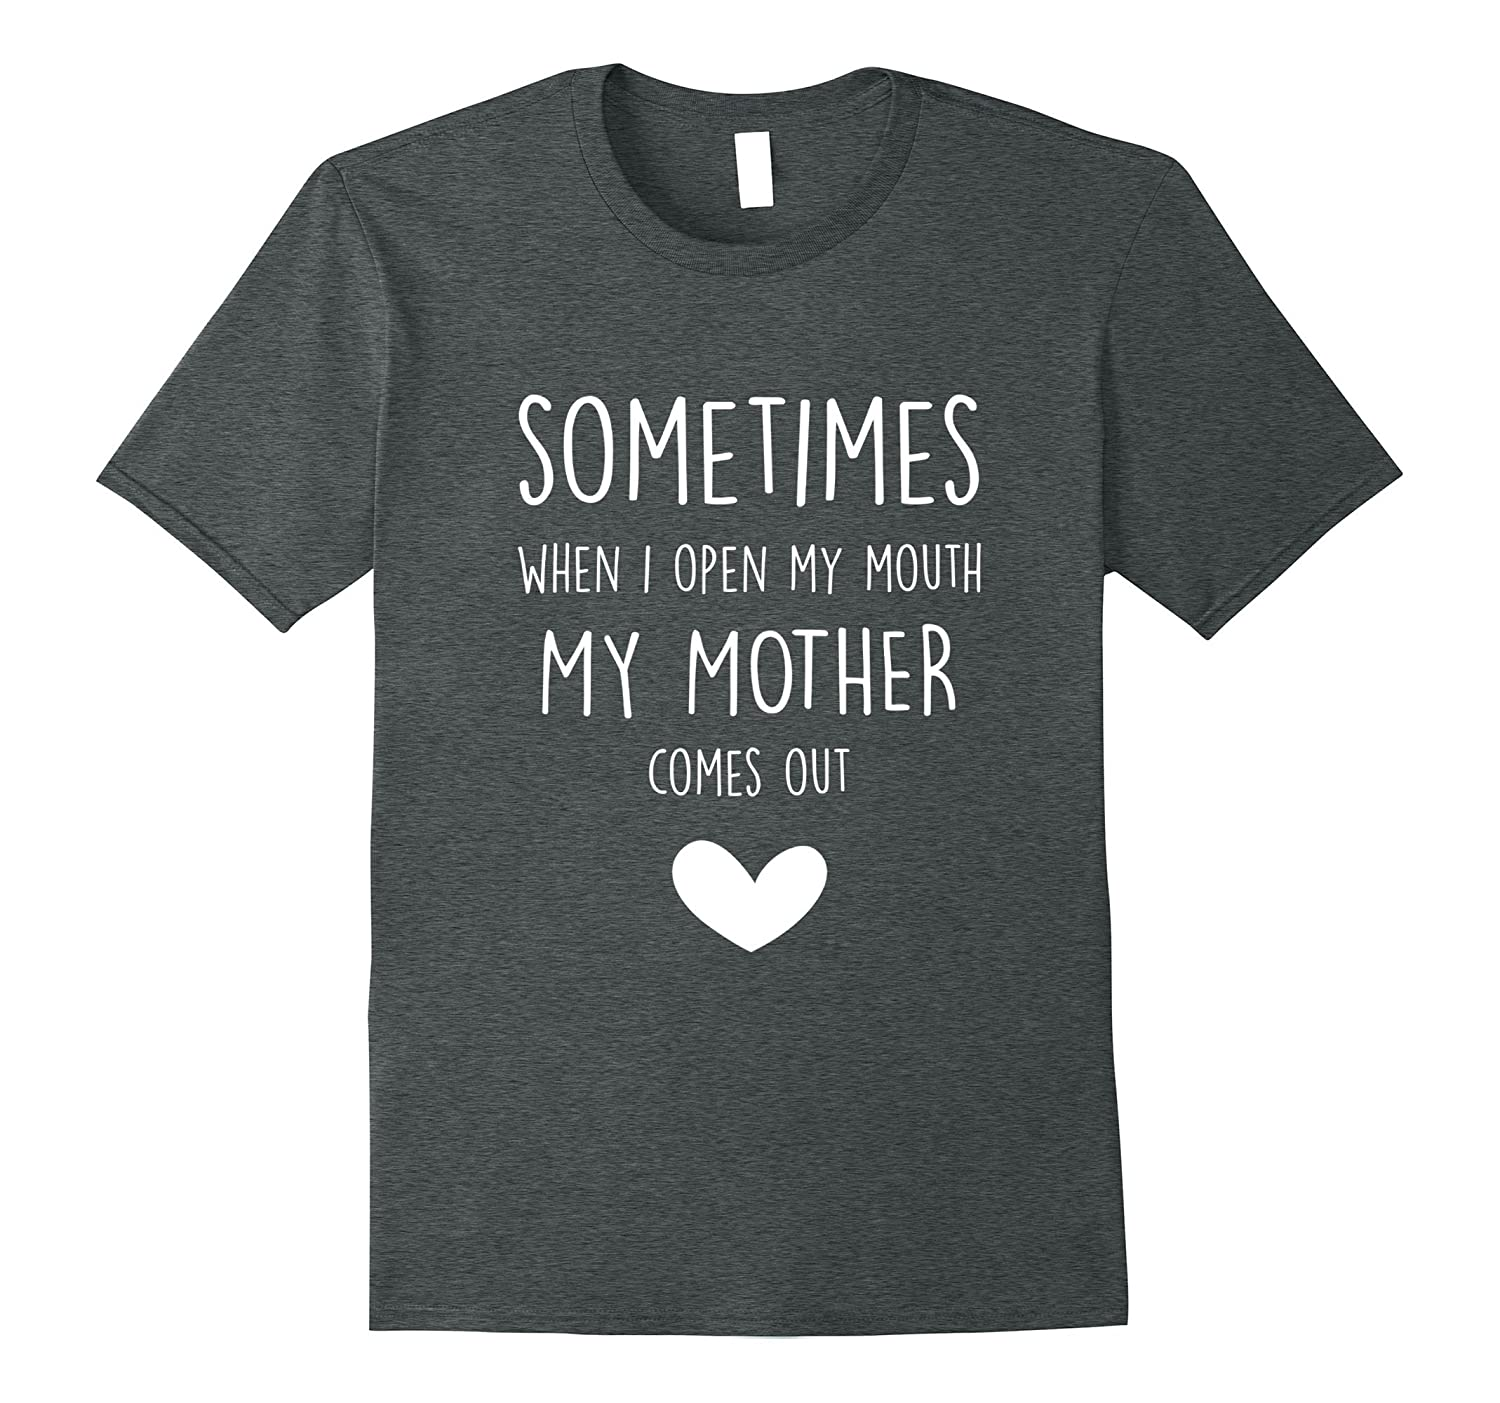 I Sound Like My Mom – Funny Daughter Shirt